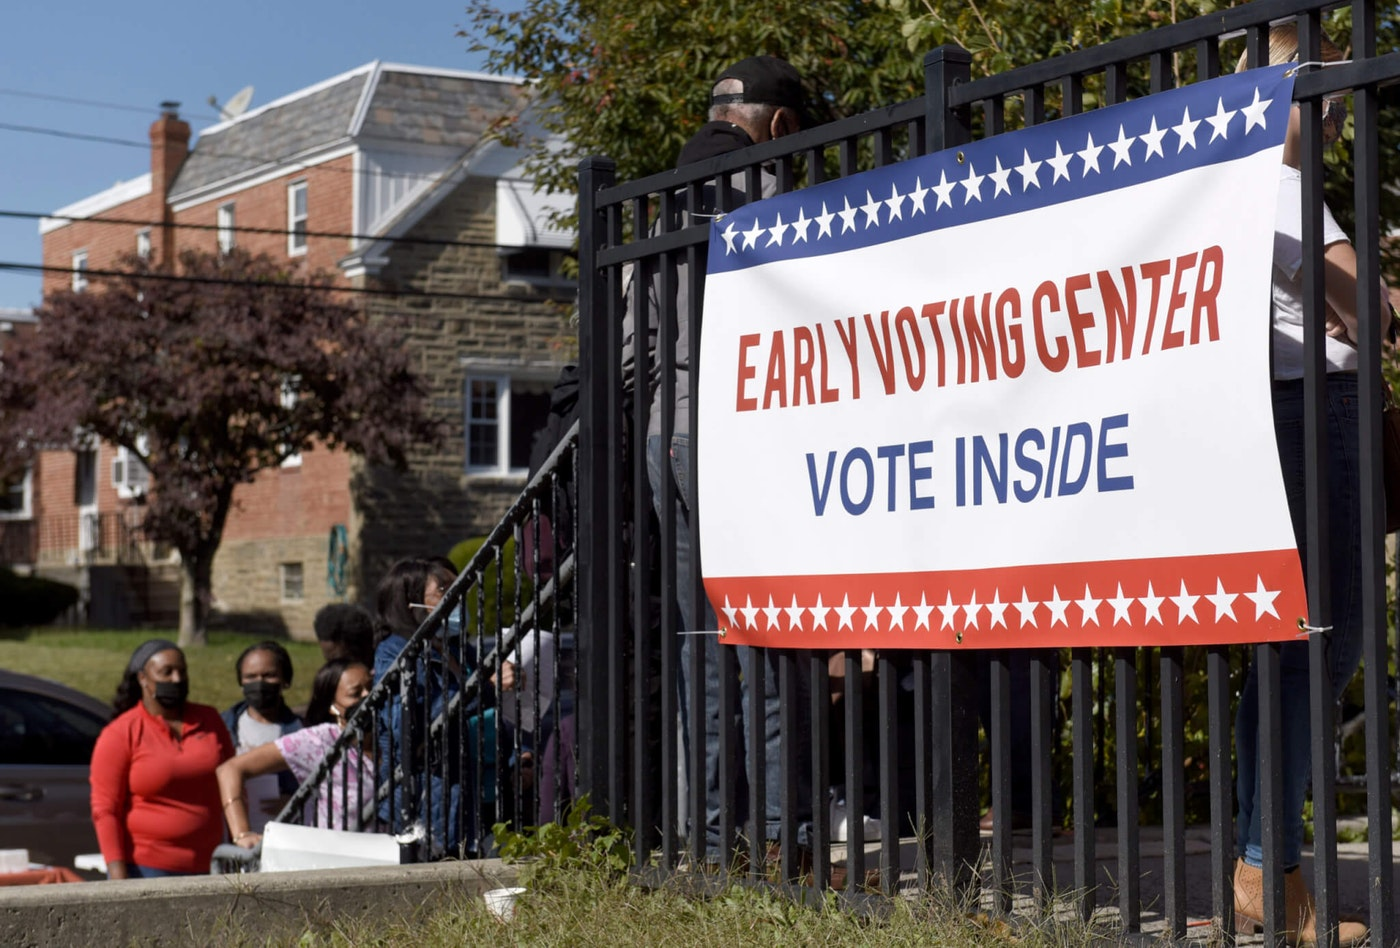 Voters line up at an early voting satellite location at the Anne B. Day elementary school, Thursday, Oct. 15, 2020, in Philadelphia. (AP Photo/Michael Perez)